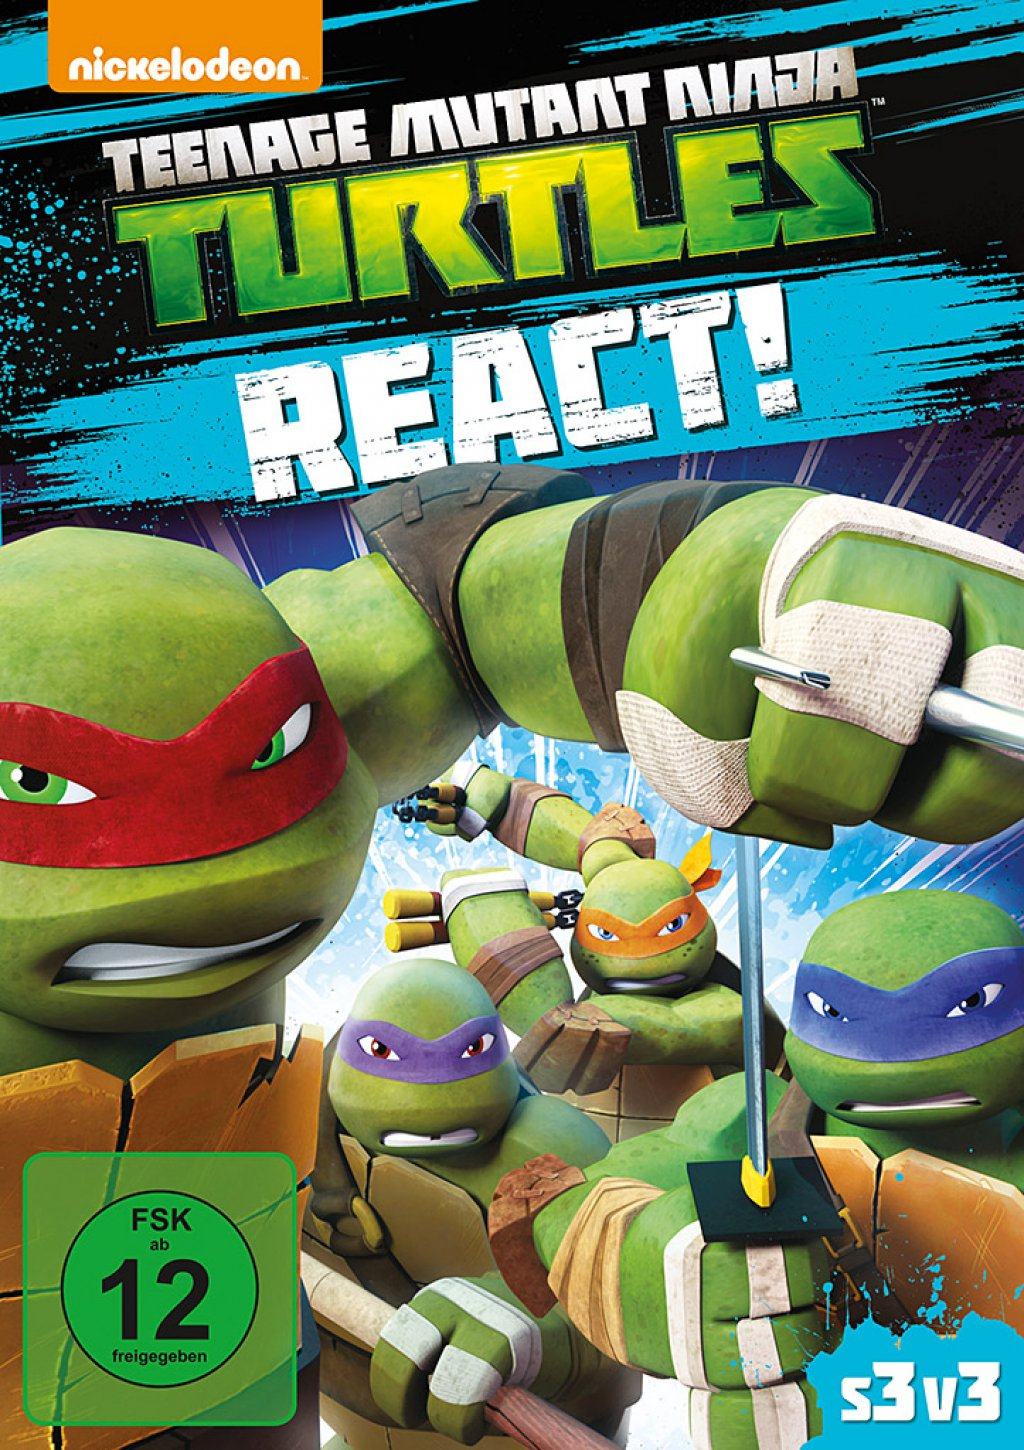 Teenage Mutant Ninja Turtles - React (DVD)